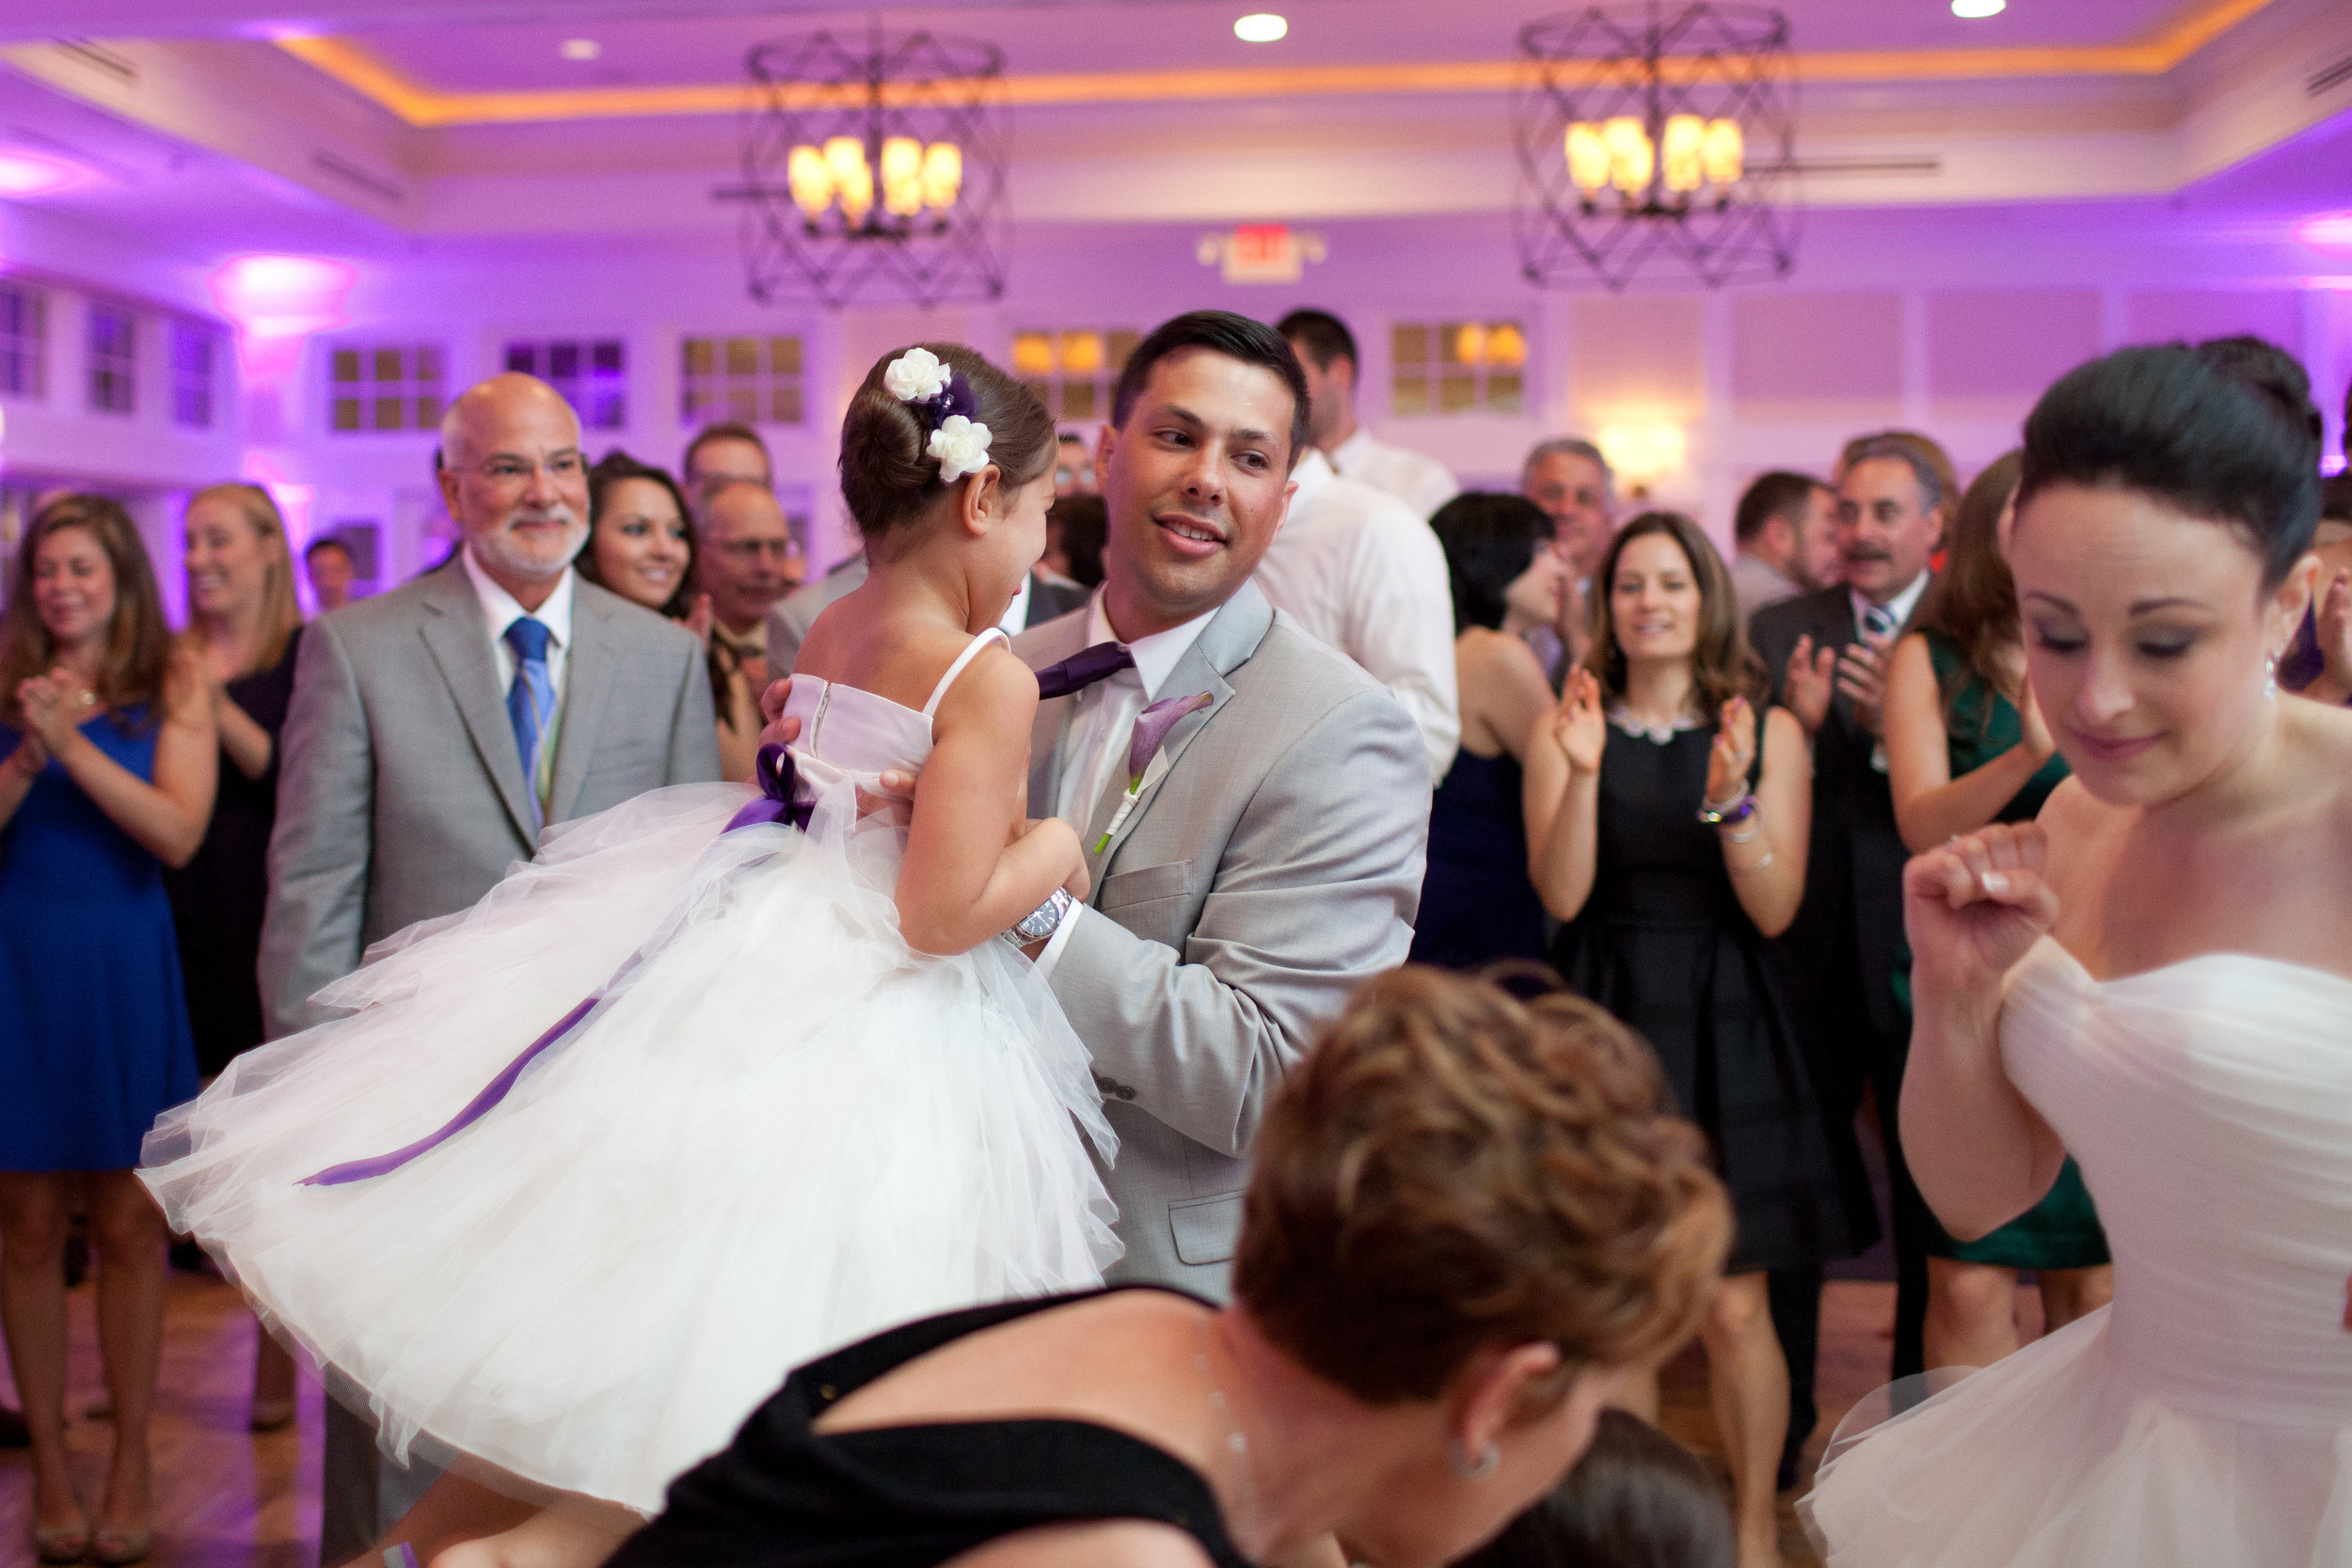 Check out our purple room uplights in the Chesapeake Bay Beach Club's Sunset Ballroom.. they perfectly accented our couple's floral centerpieces. (Photo credit: Liz & Ryan Photography)